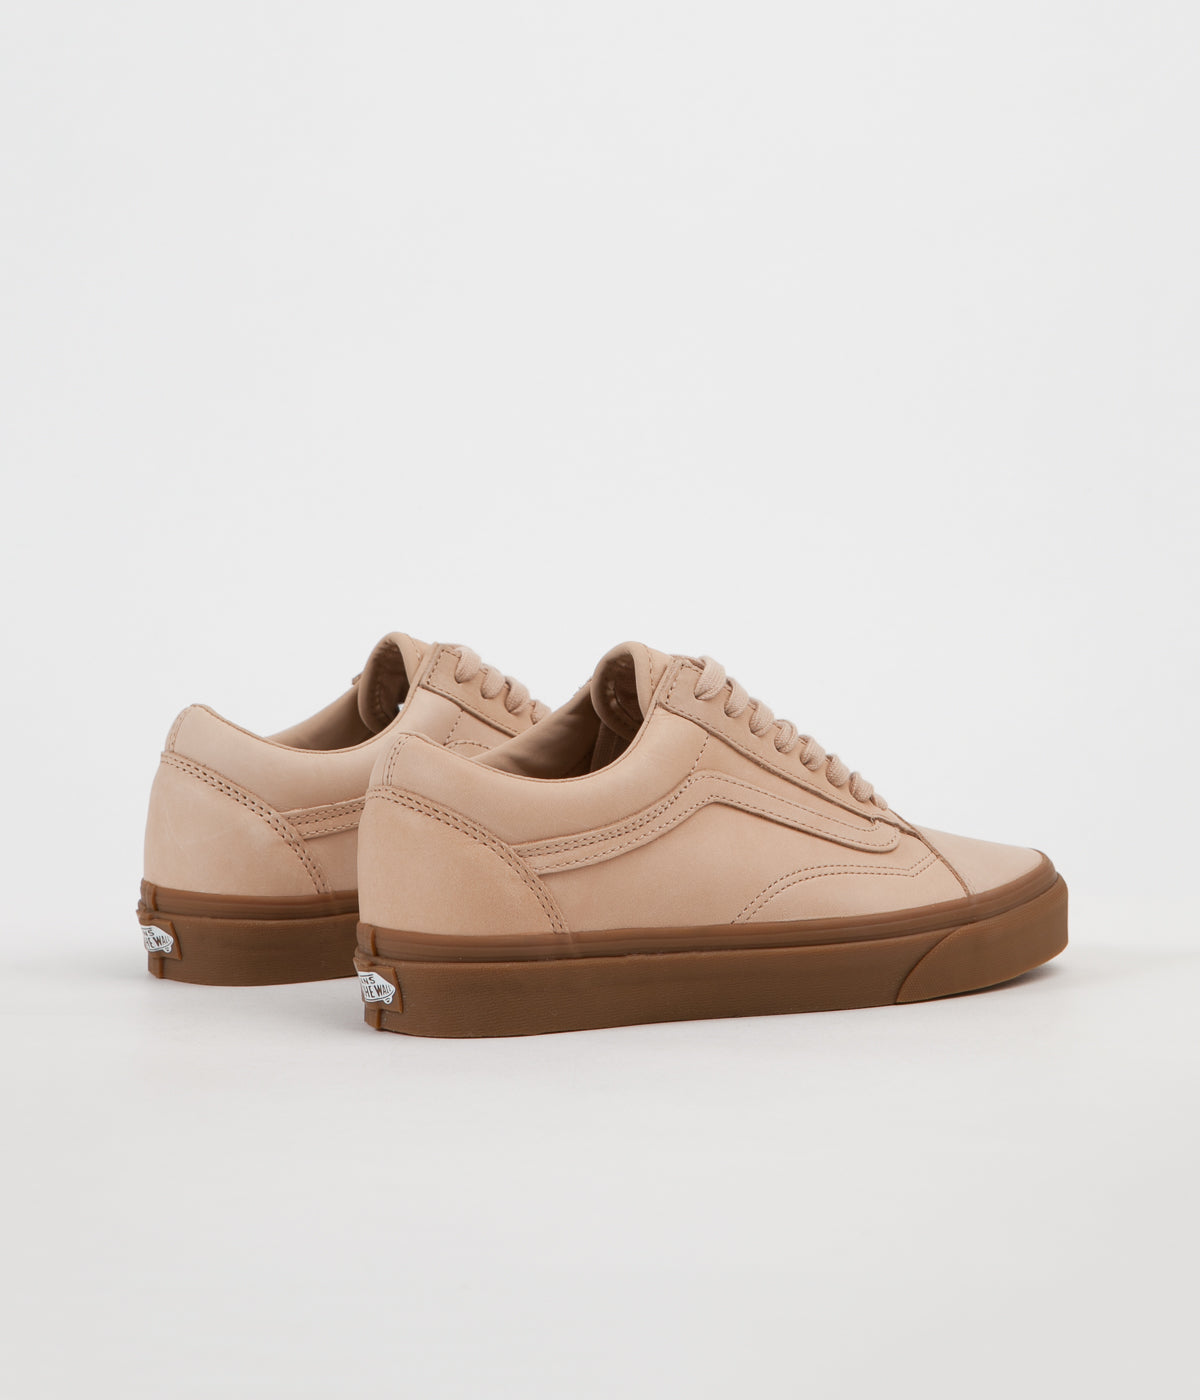 3dcedcbf470e ... Mens Trainers in Tan  detailed images 47c48 b0e22 ... Vans Old Skool DX  Veggie Tan Leather Shoes ...